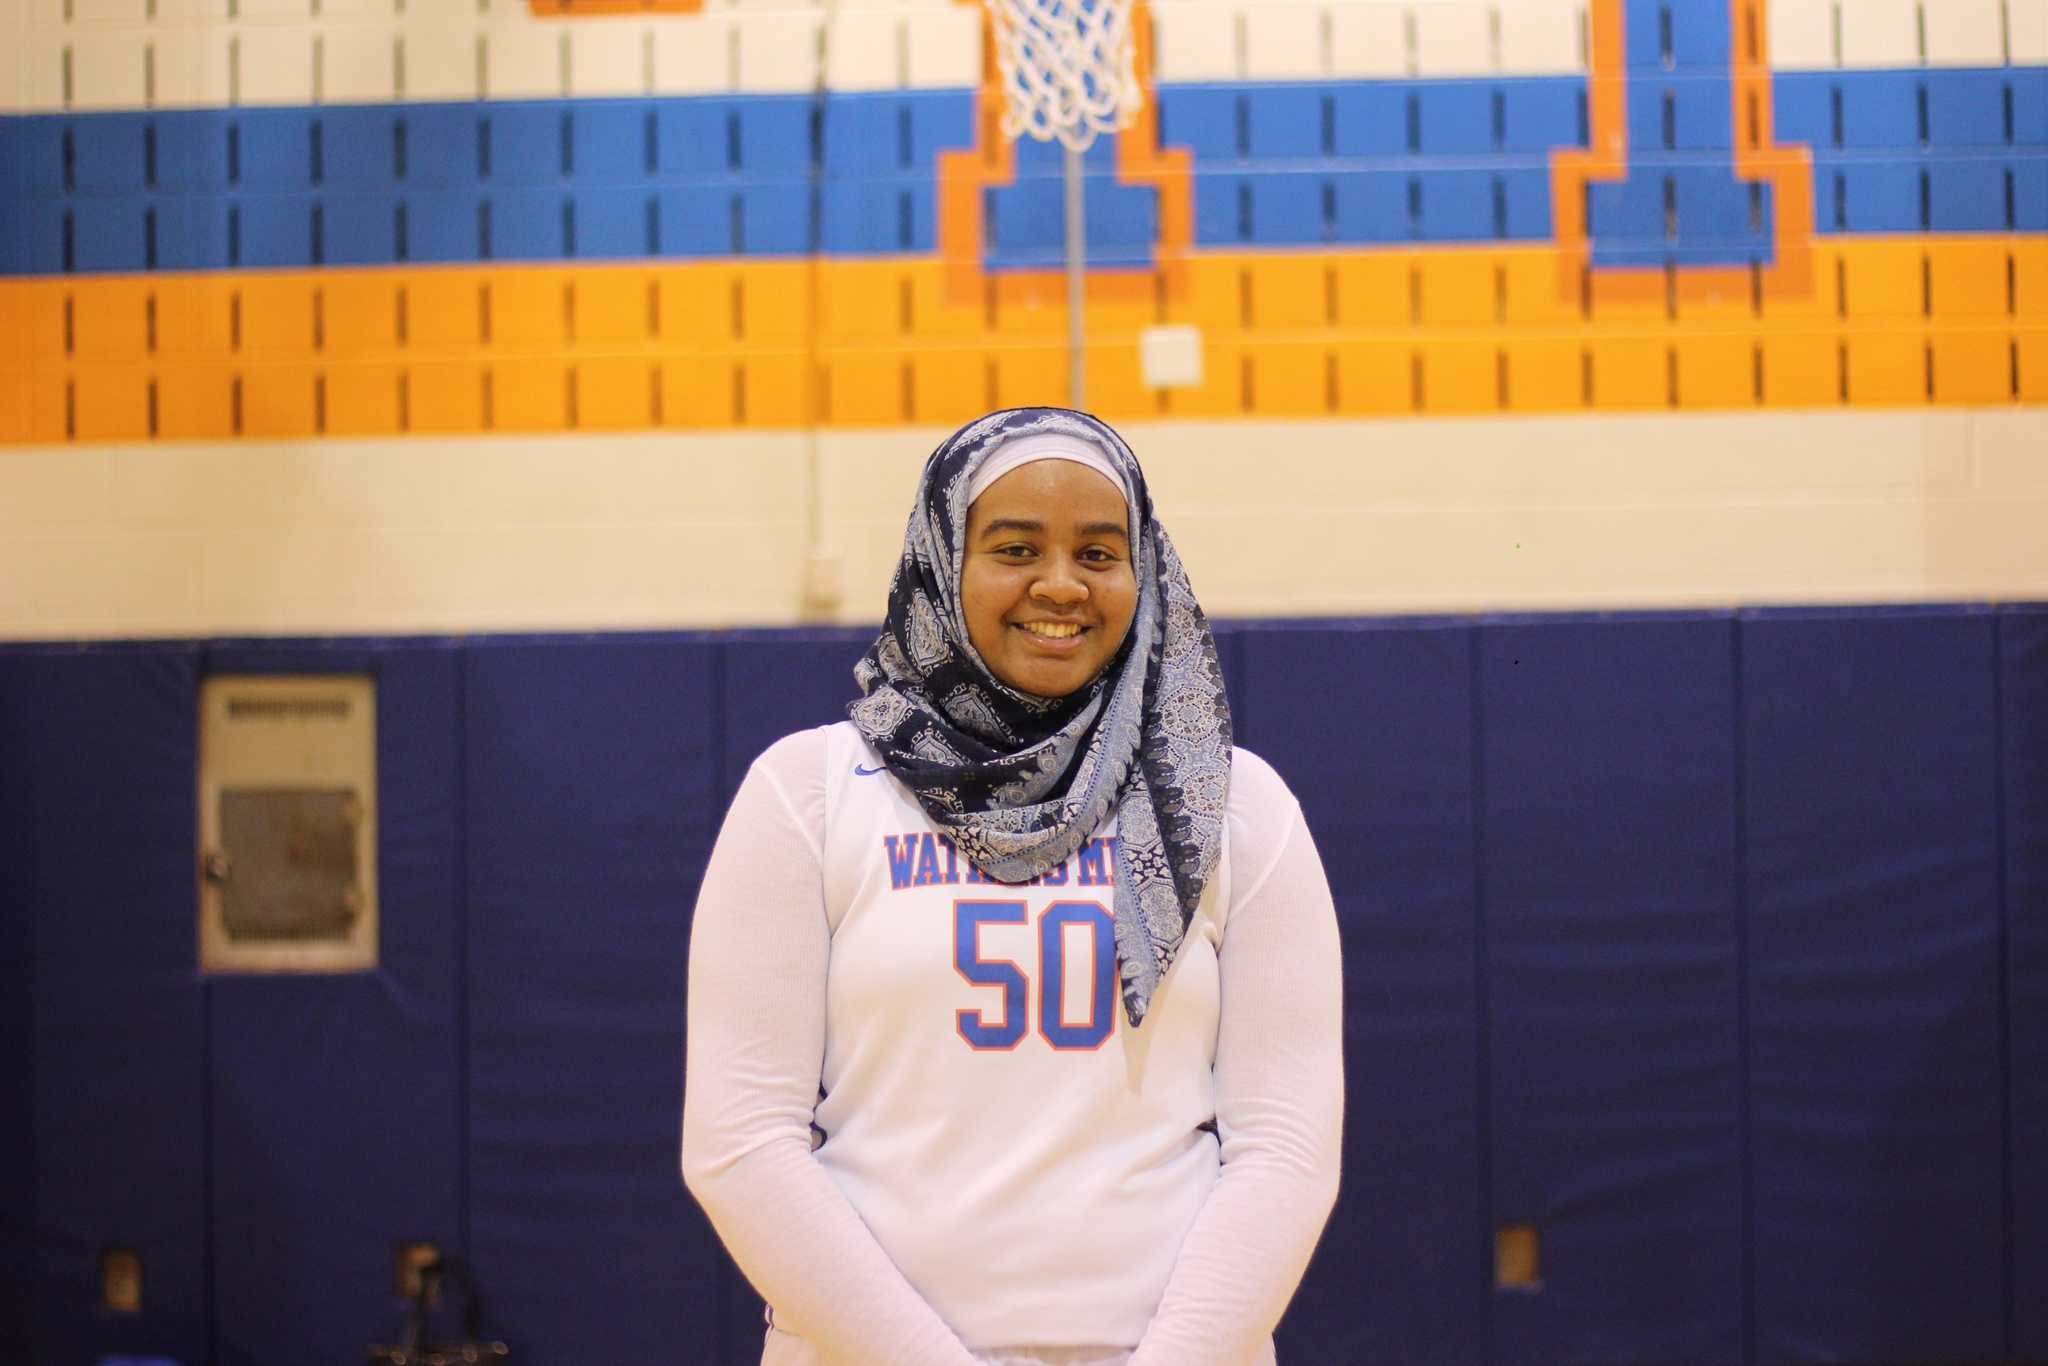 Je'Nan Hayes, a junior at Watkins Mill, finished her first season of organized basketball on the sidelines after referees told her coaches that due to national sports rules, she wasn't allowed to play in her hijab. Photo courtesy Je'Nan Hayes.